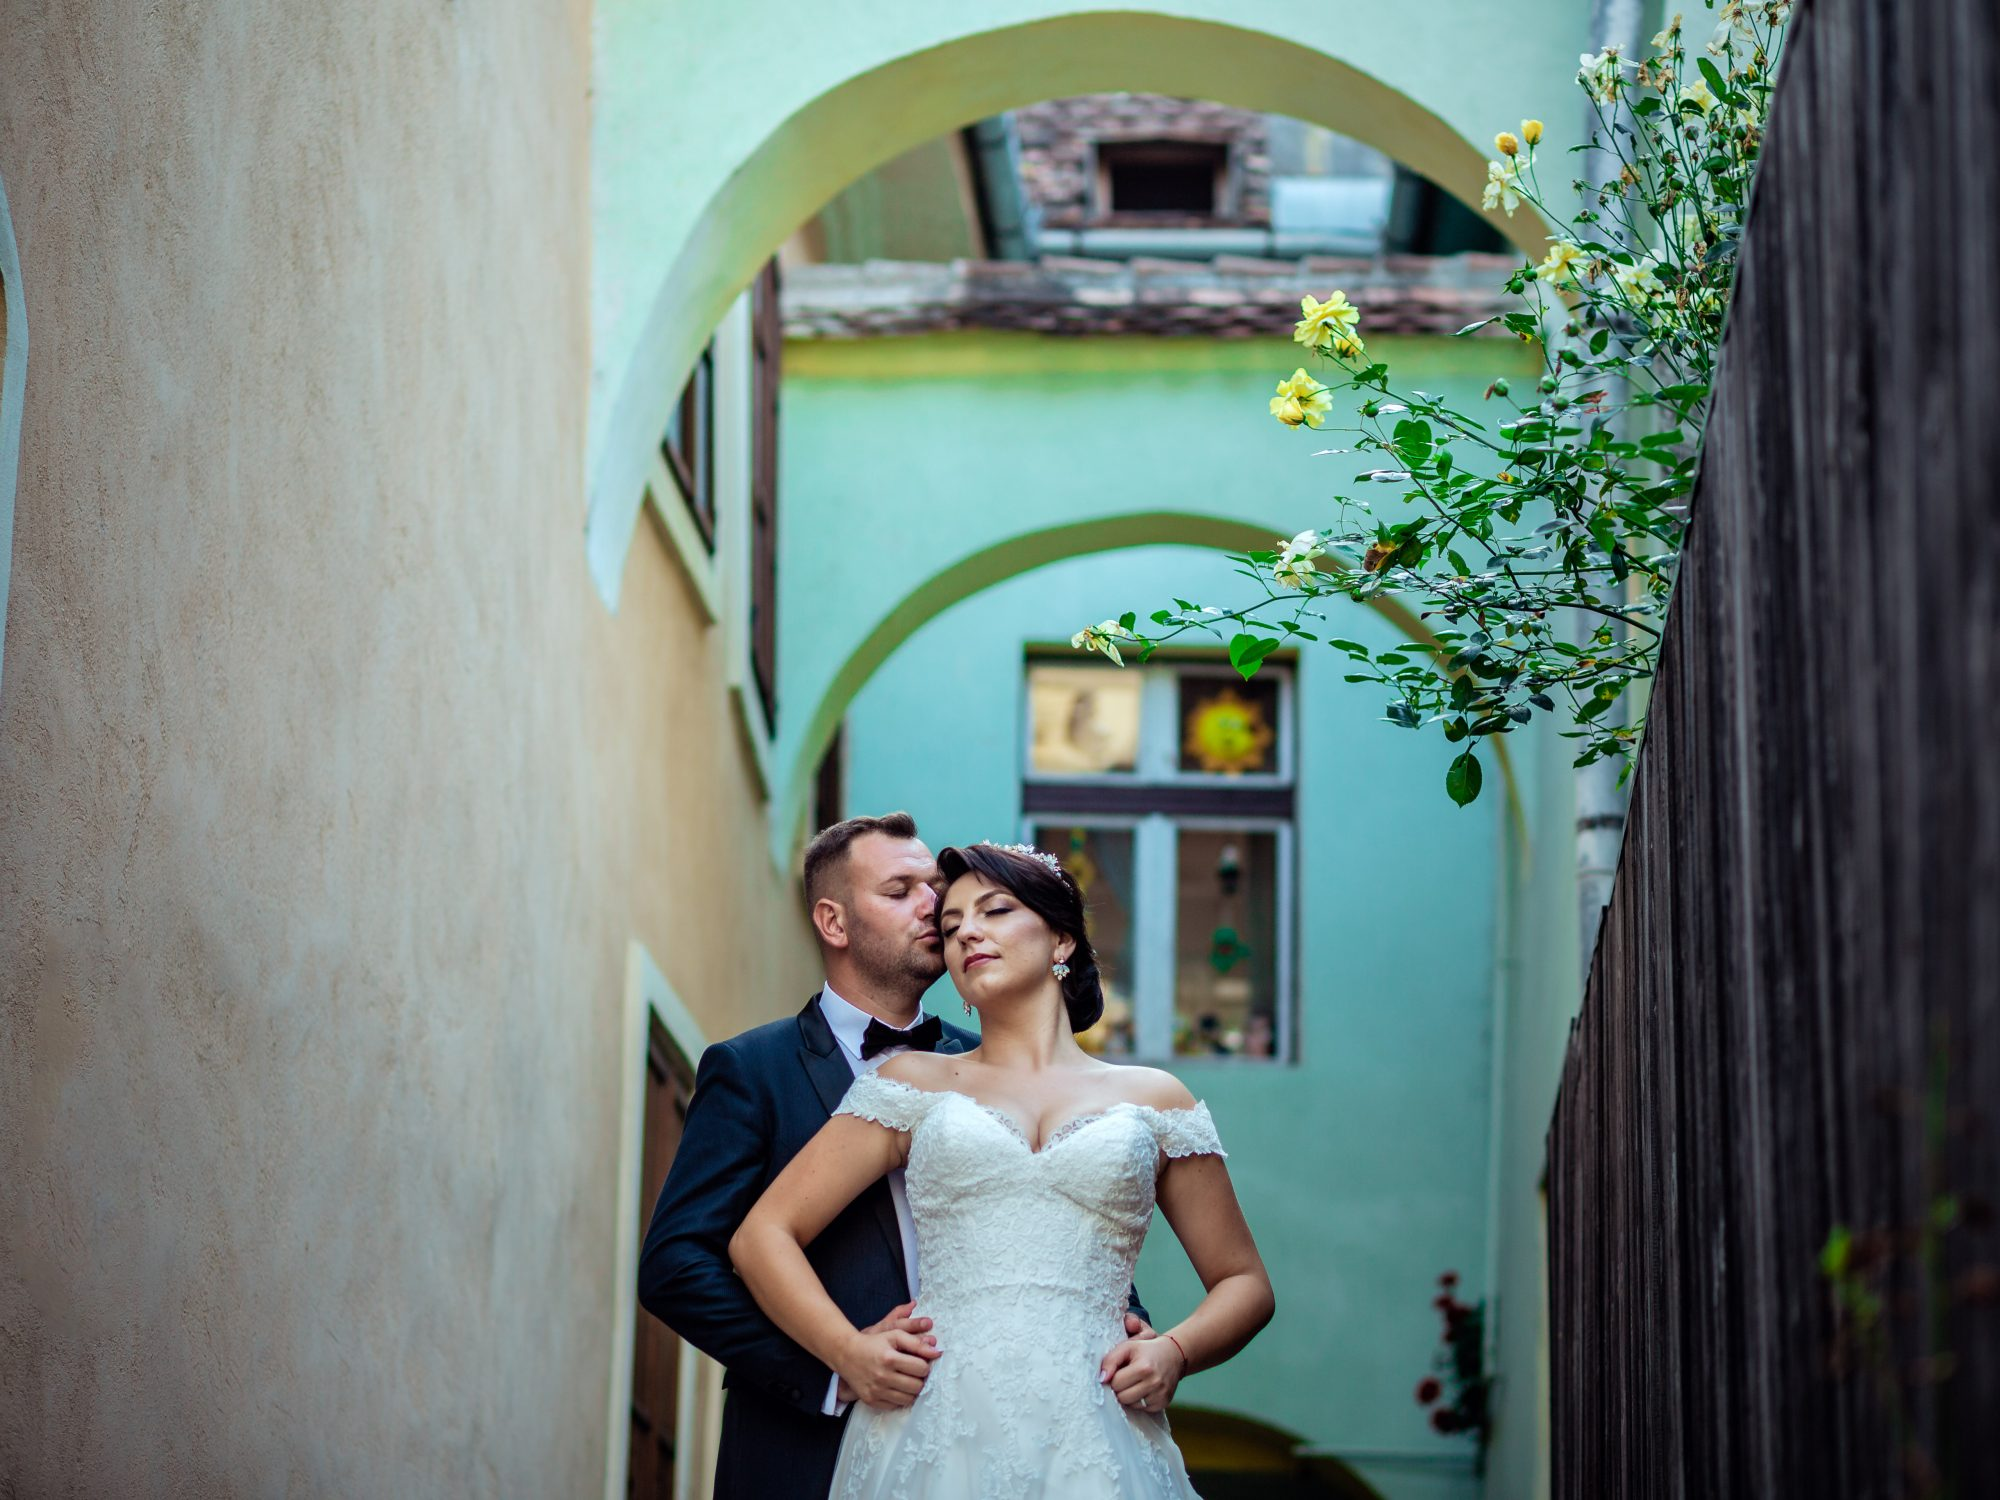 LEU 0973 2000x1500 - TRASH THE DRESS - Roxana si FLORIN